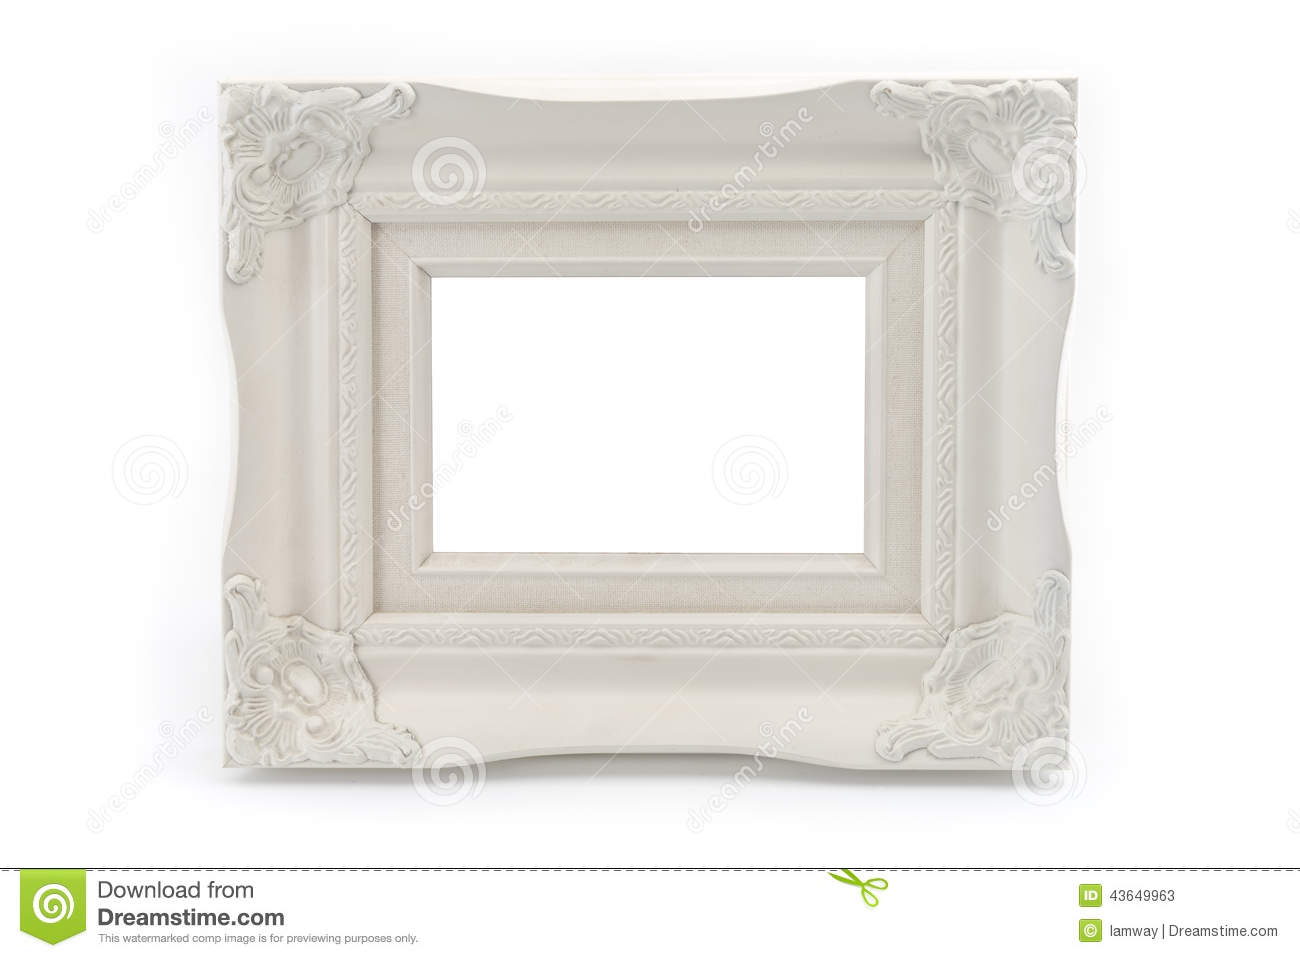 Plastic vintage style photo frame stock photo image for Small vintage style picture frames